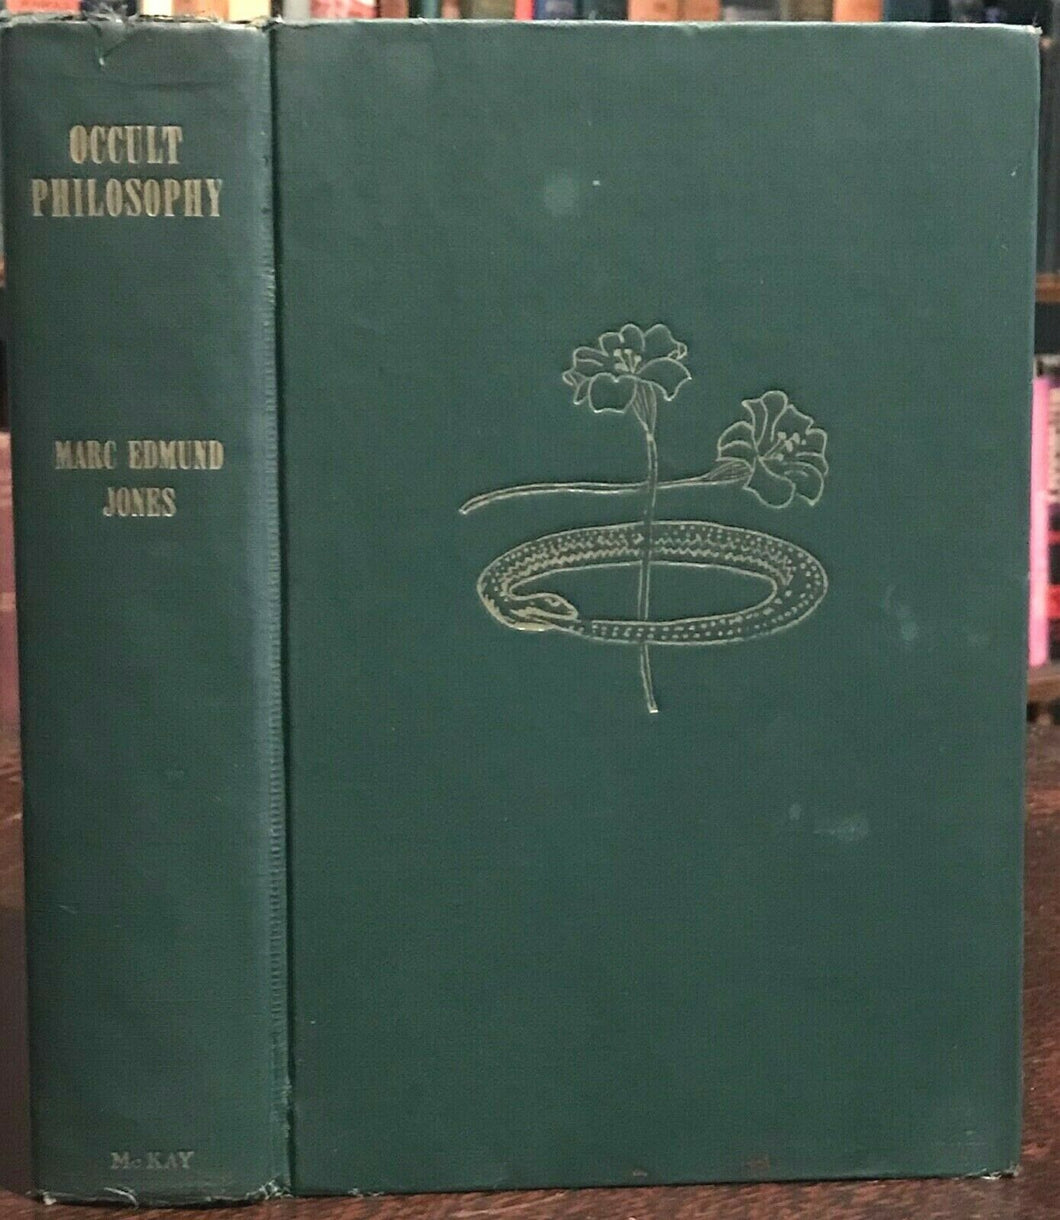 OCCULT PHILOSOPHY - Marc Edmund Jones, 1947 - OCCULTISM MYSTERIES - SIGNED